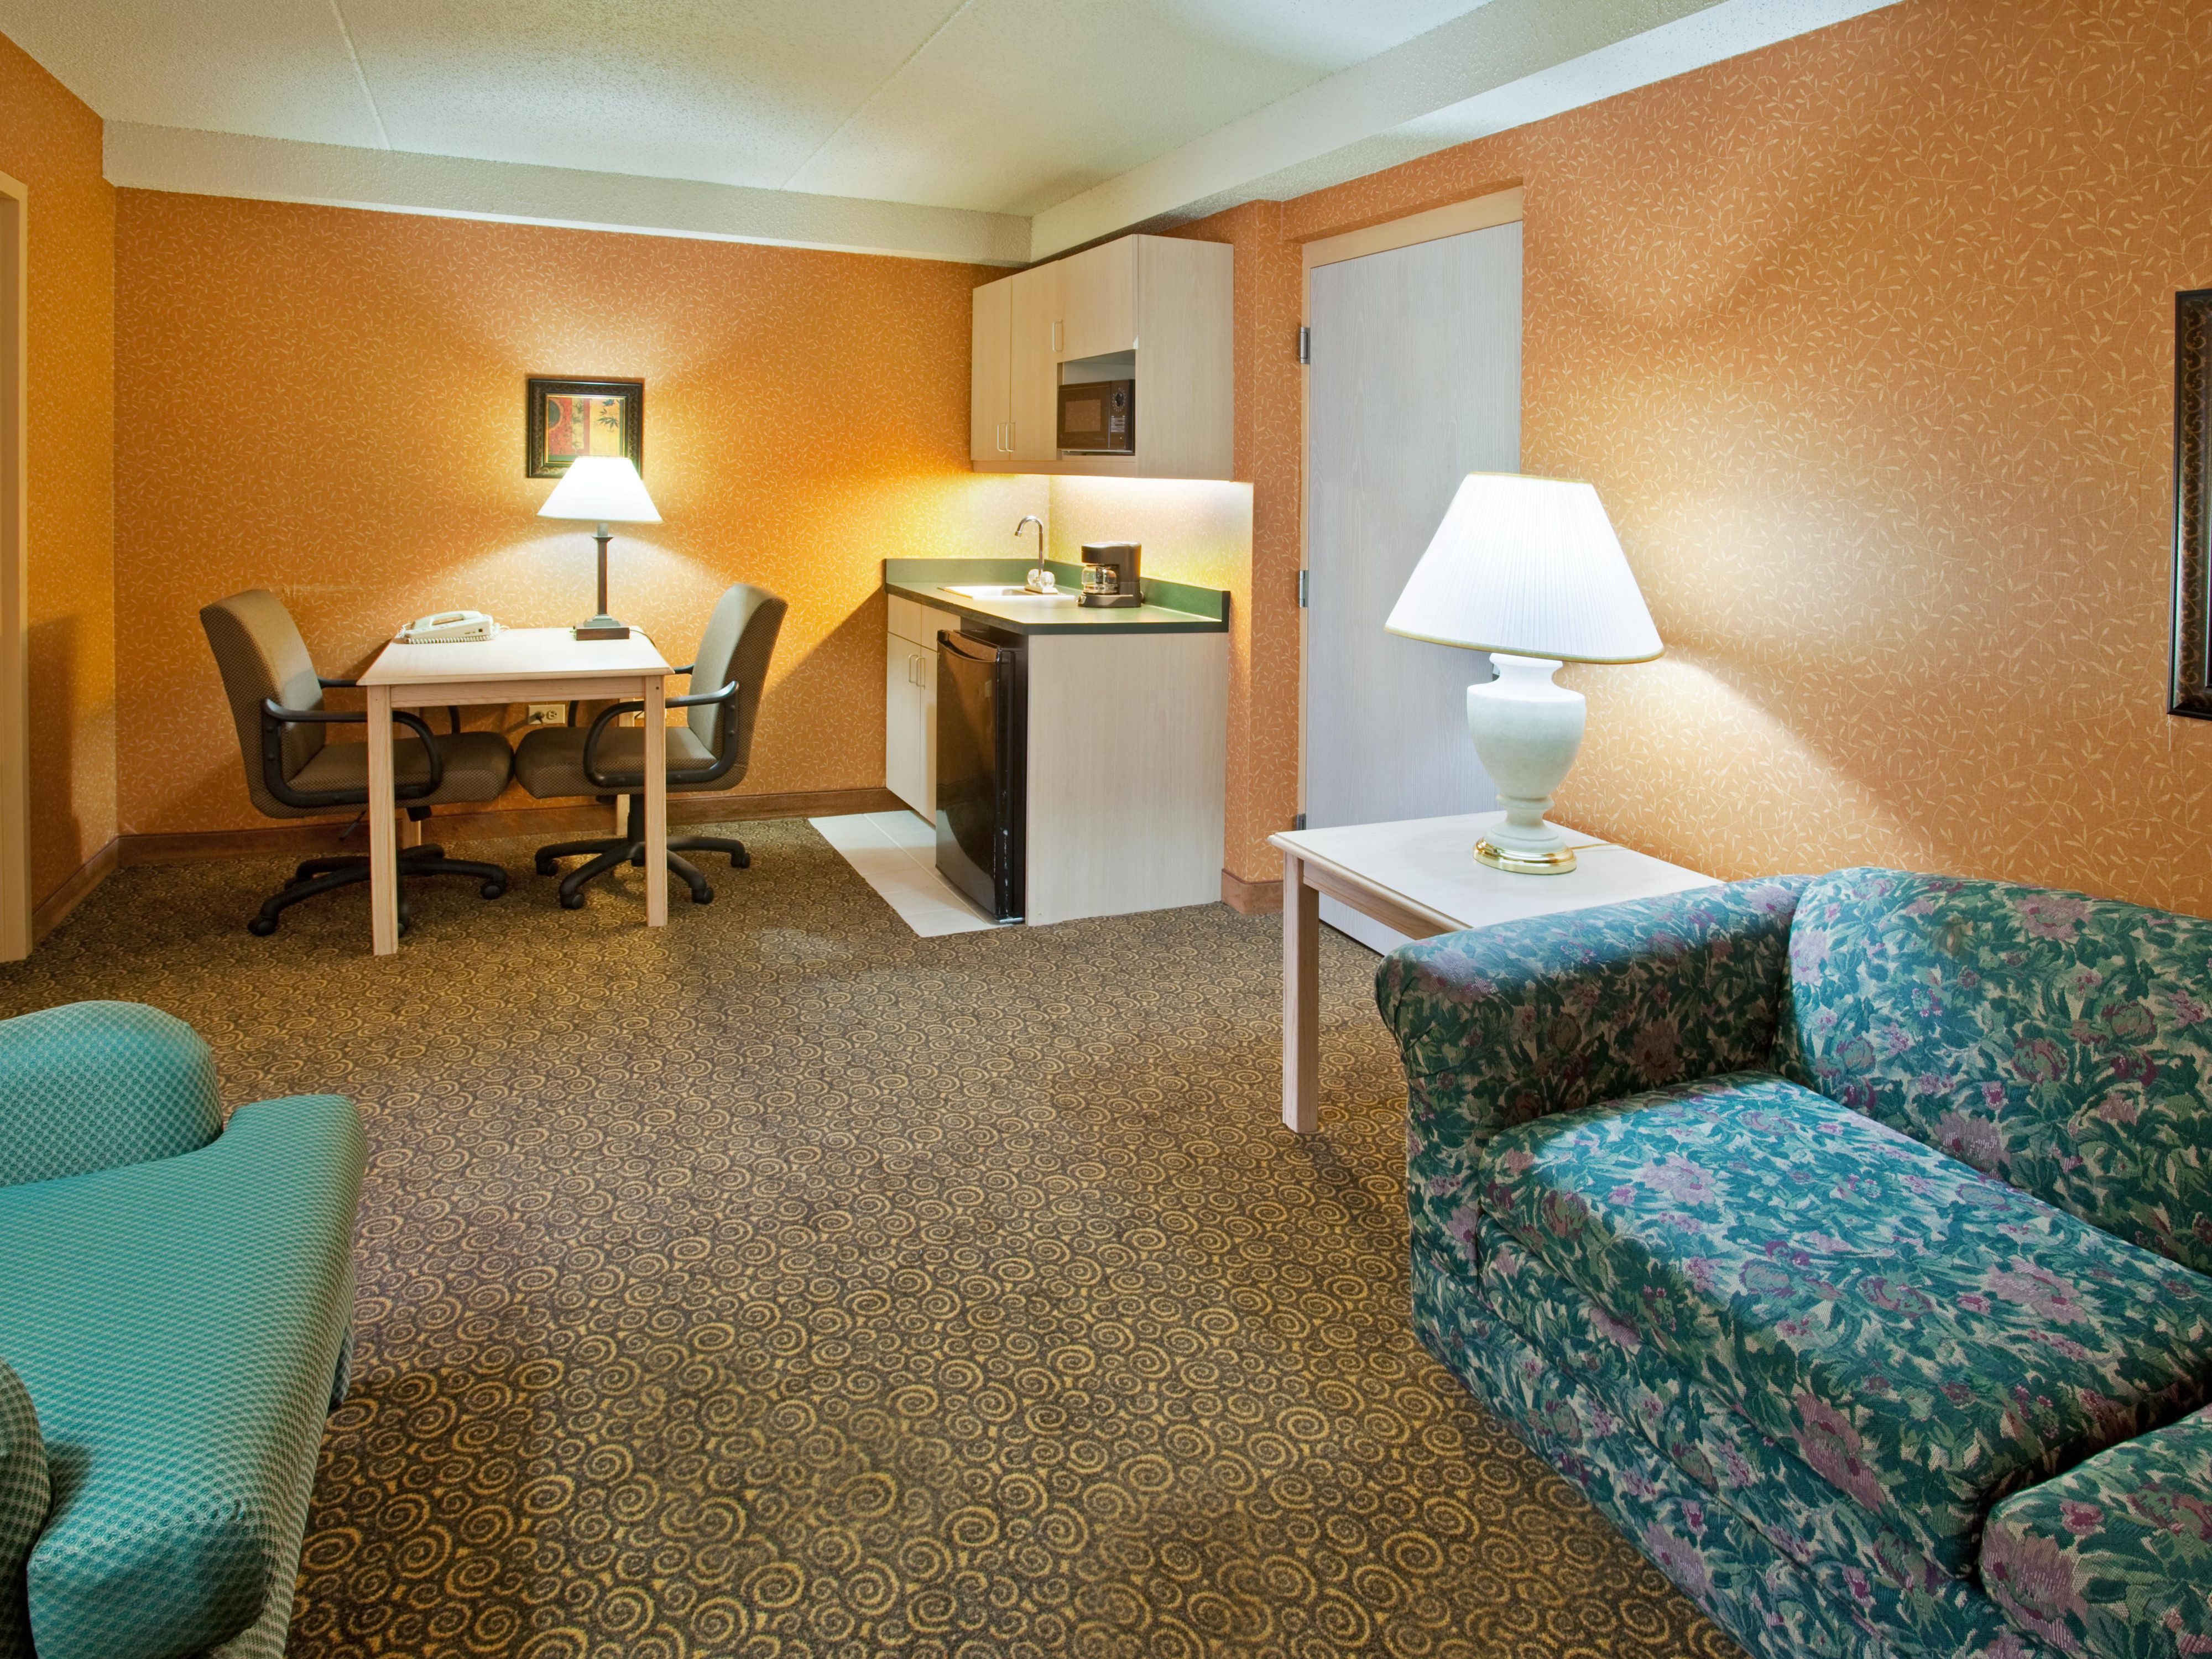 Hotel Suites in Bolingbrook, IL